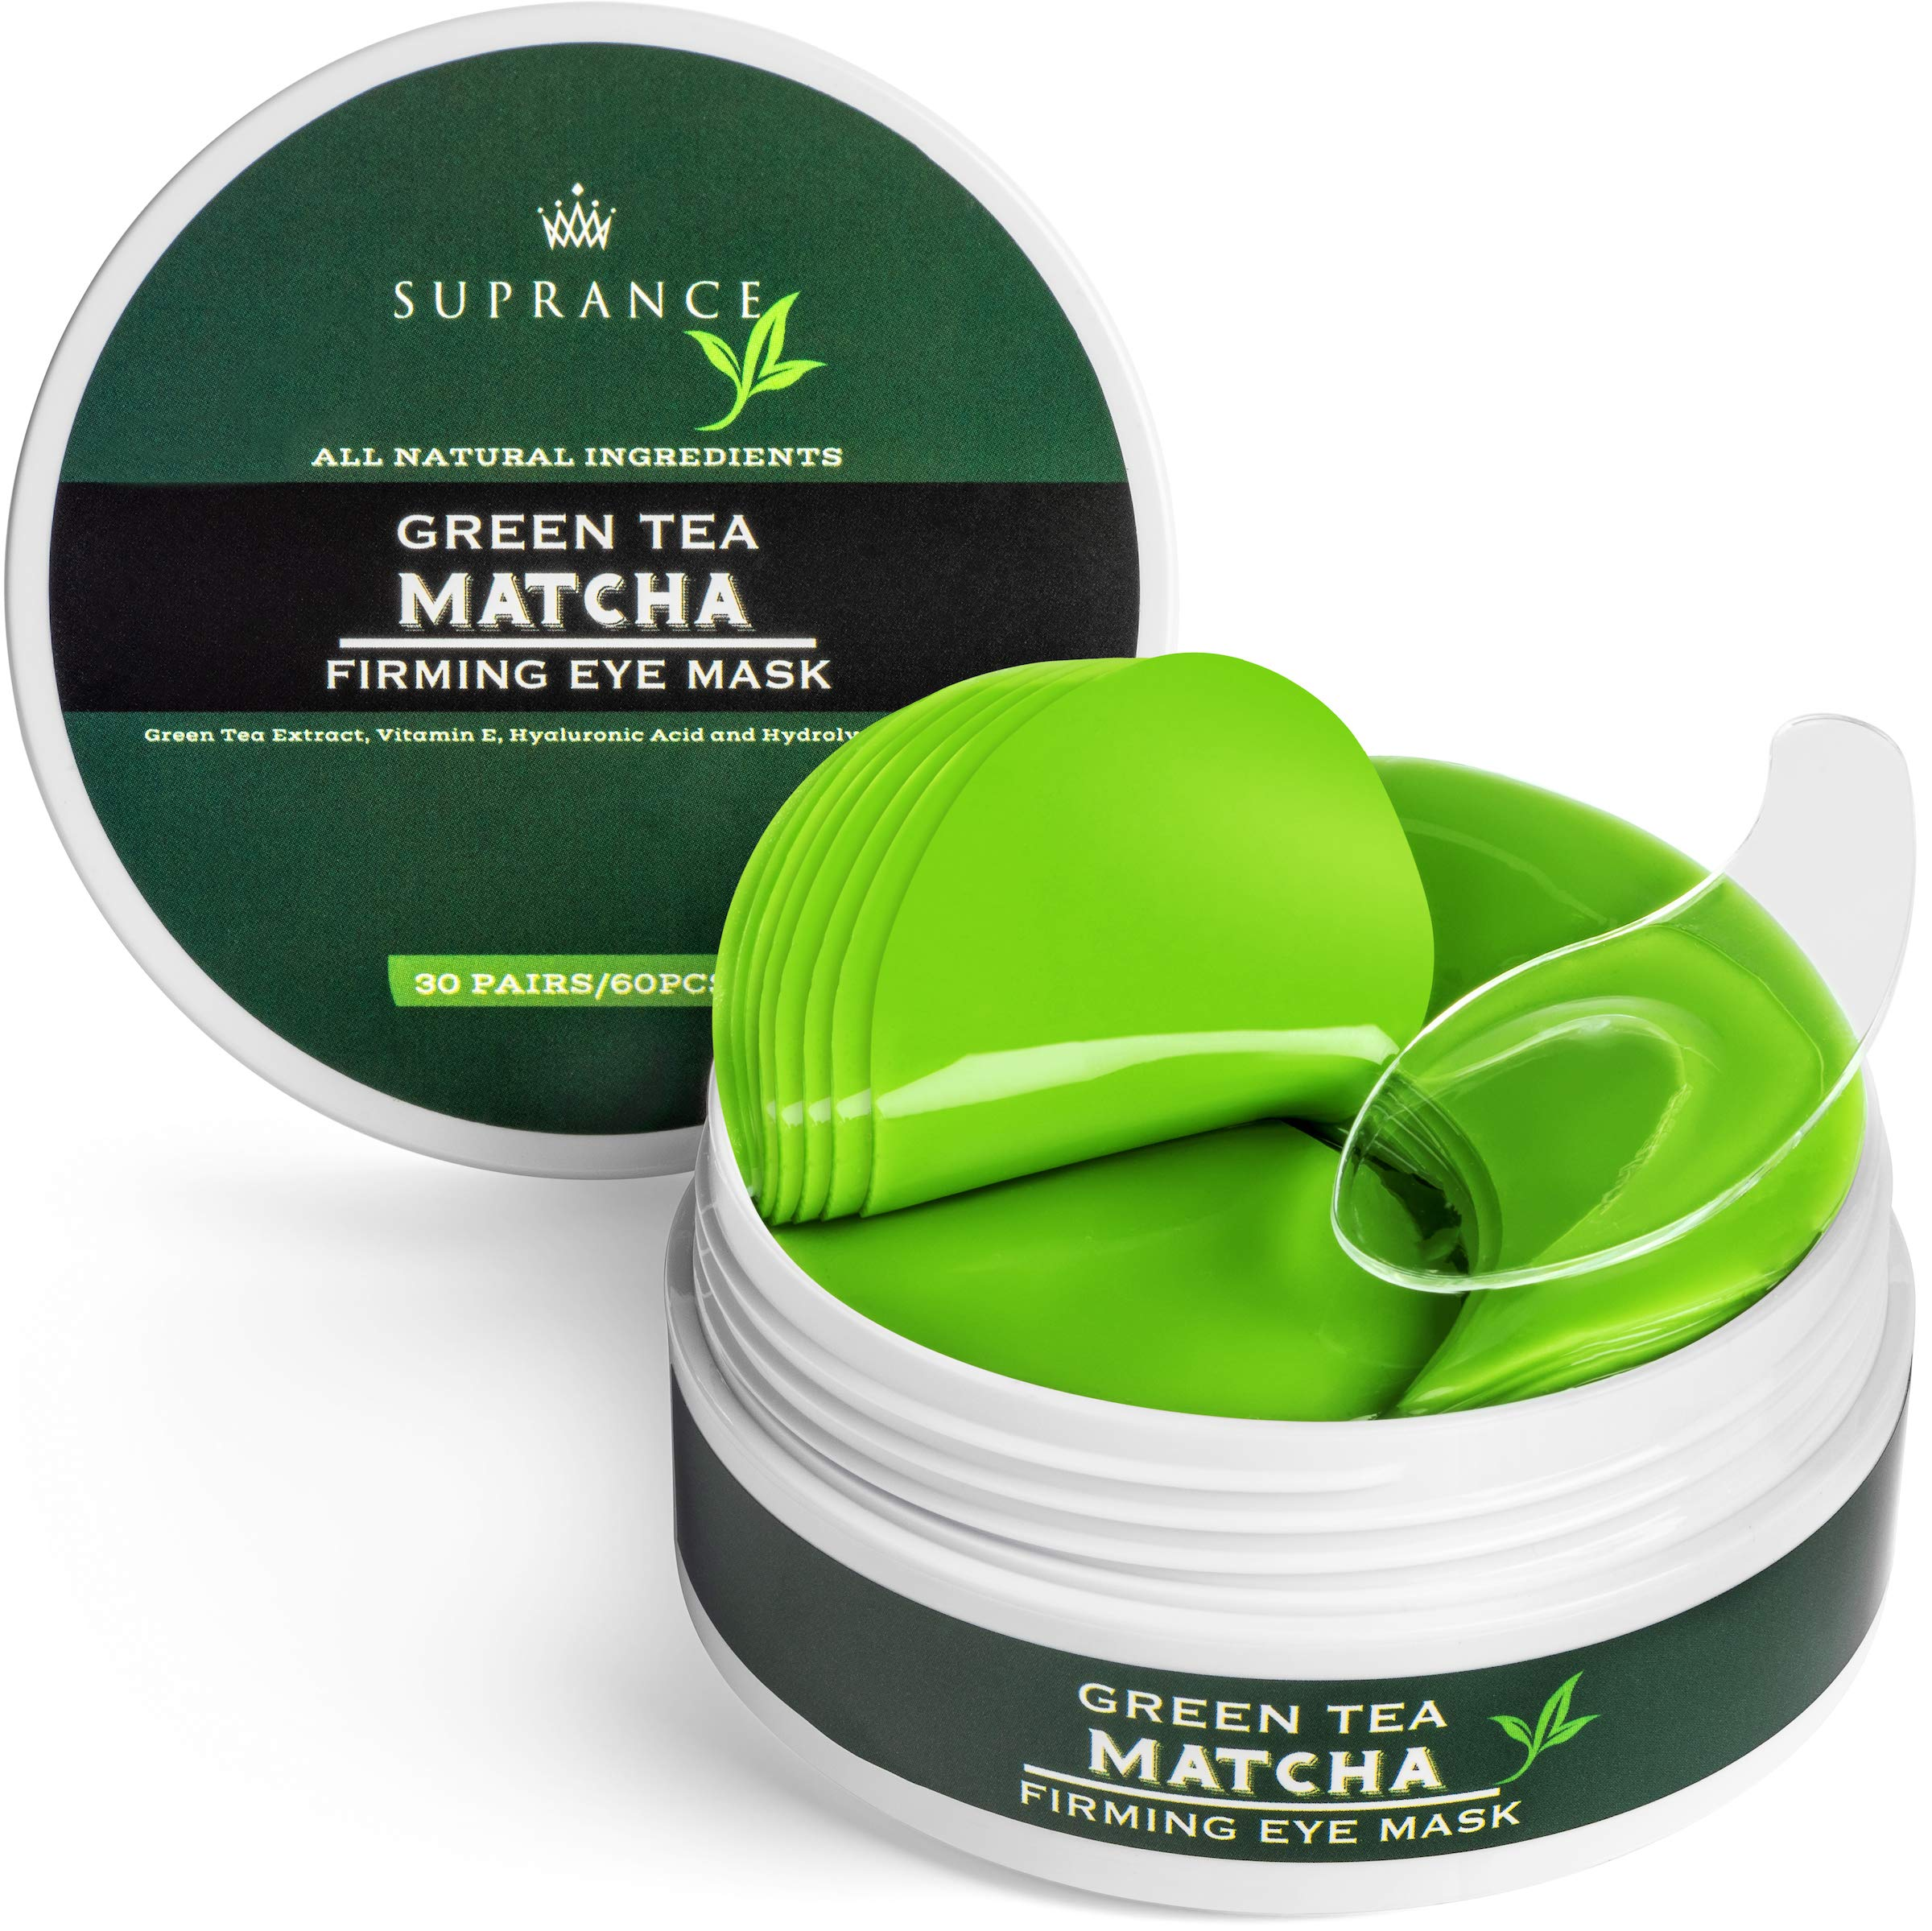 Green Tea Matcha Eye Mask by Suprance - Under Eye Patches Treatment for Dark Circles, Eye Bags, Puffiness - Anti-Wrinkle With Hyaluronic Acid and Collagen - 30 Pairs/60 Pcs. by Suprance